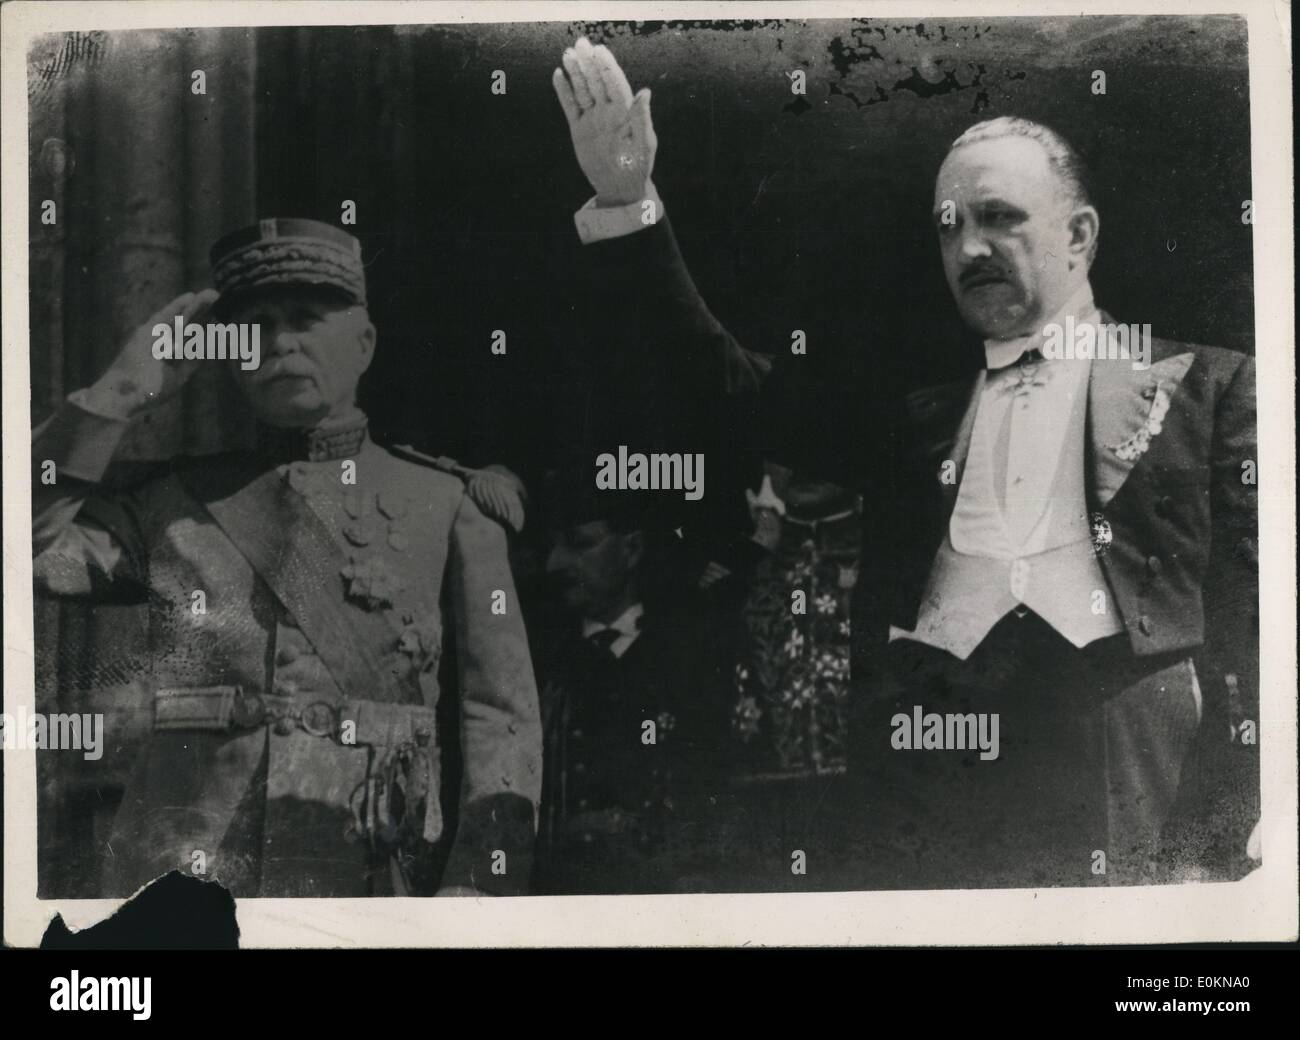 Jan. 1, 1920 - Field Marshal Petain saluting commandant of Burgos after he had presented his credentials to General Franco as the French Ambassador to nationalist Spain. with him is Baron De Las Turres. - Stock Image